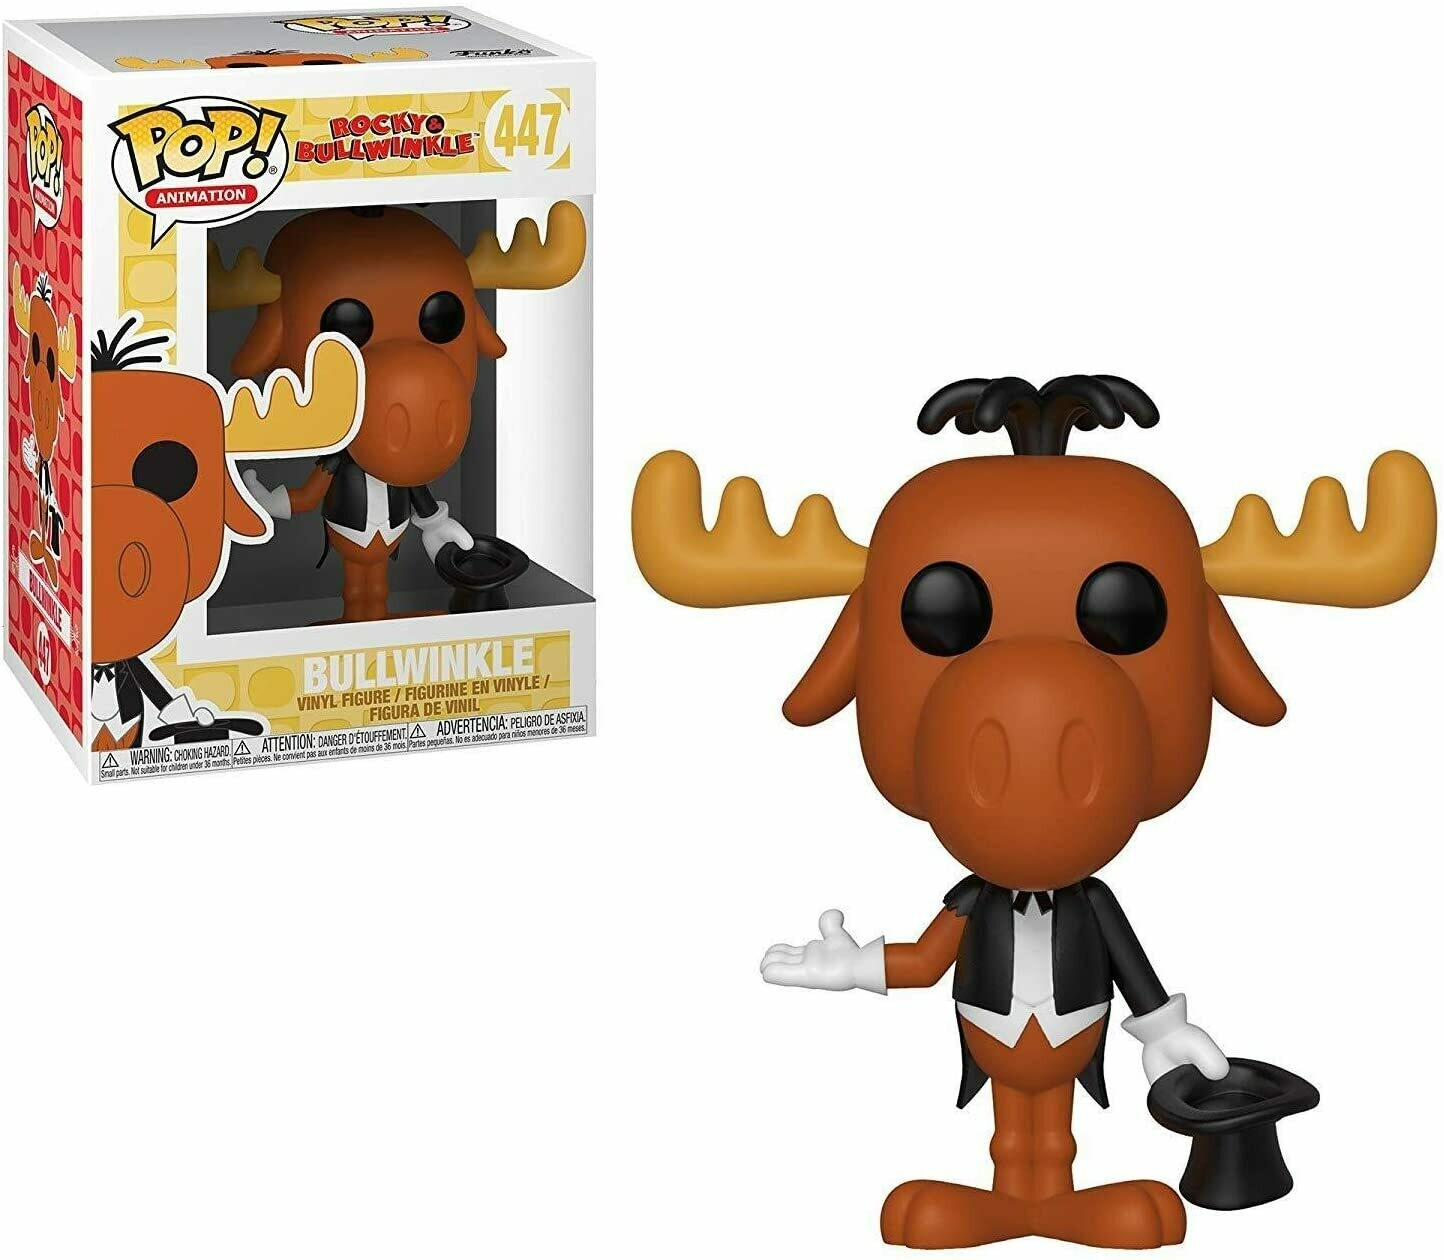 Funko Pop Animation: Rocky & Bullwinkle - Magician Bullwinkle Collectible Figure